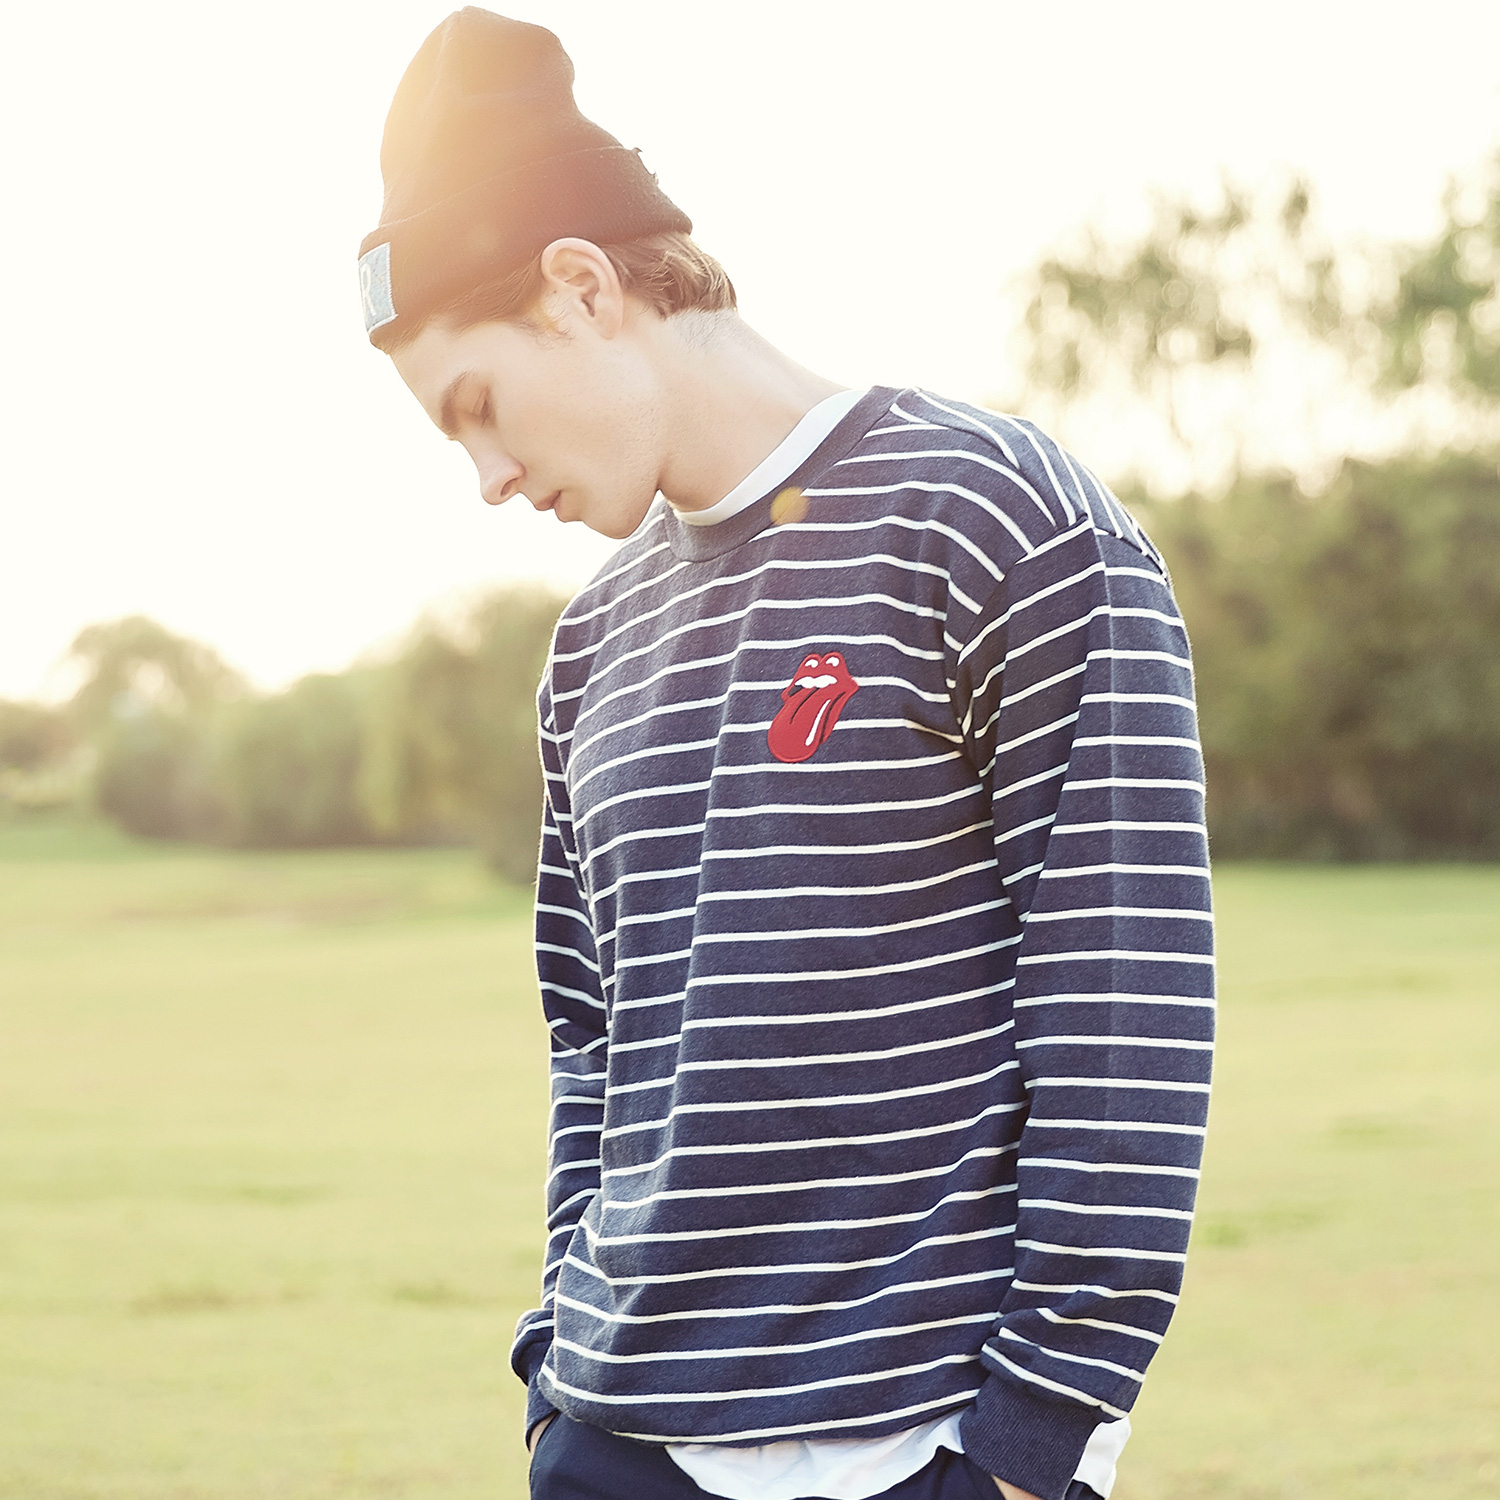 [THE ROLLING STONES] VINTAGE TONGUE STRIPE CREWNECK NAVY